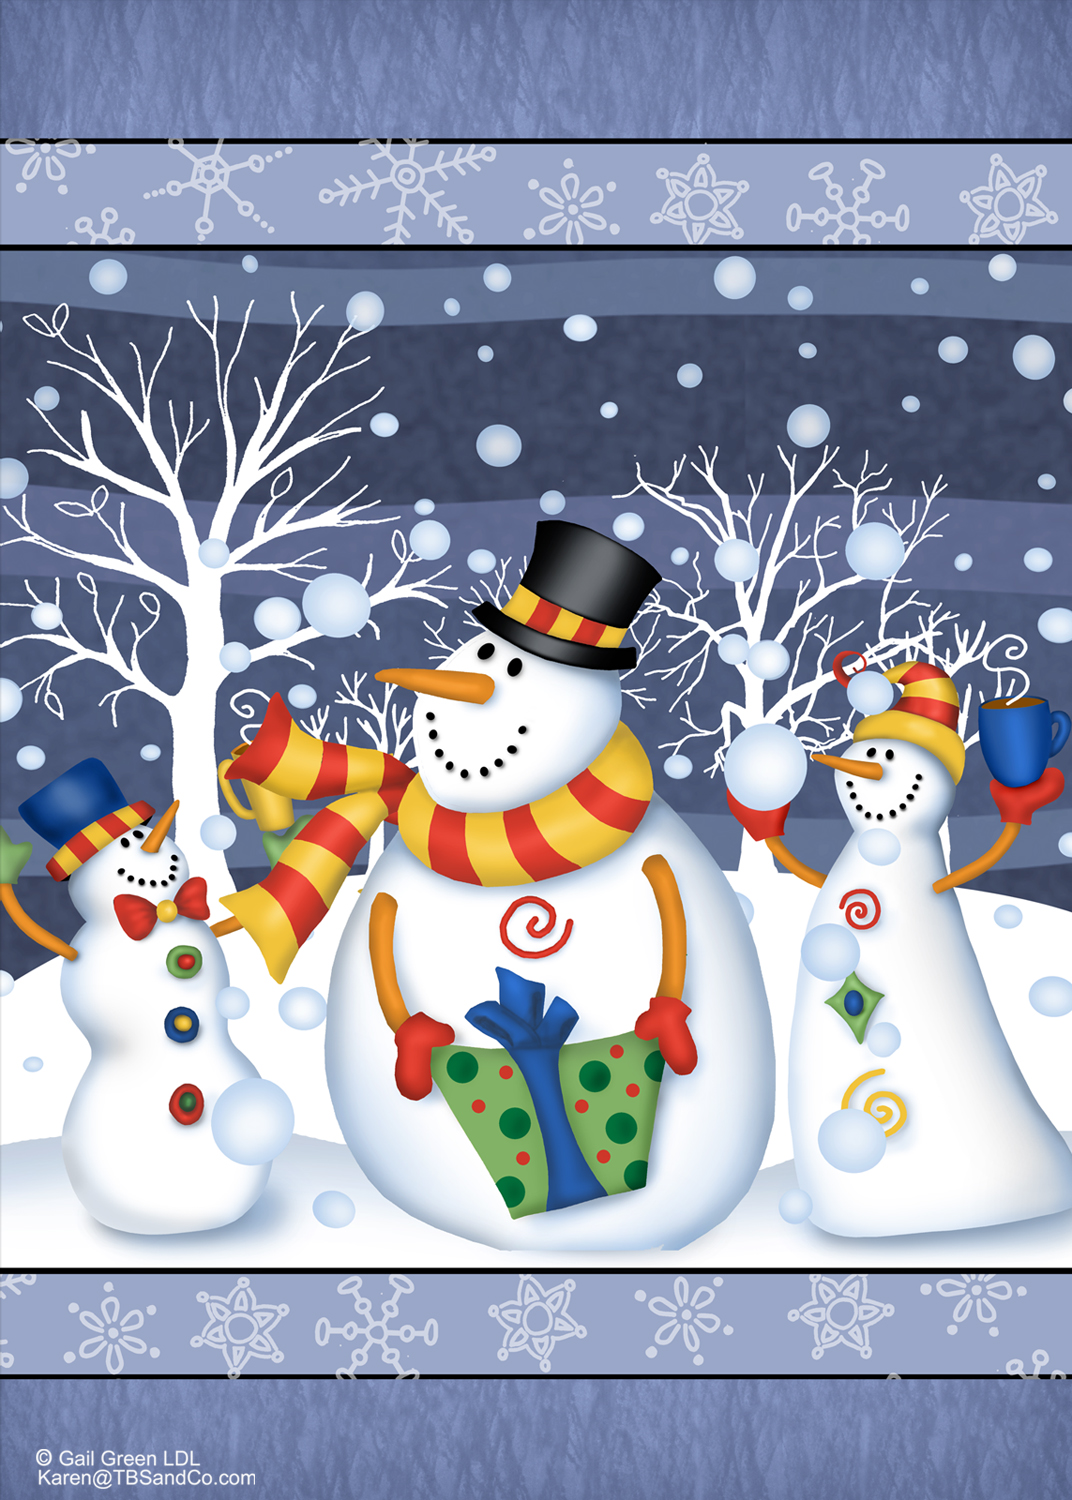 GG_WinterStationery_132-Snowman.jpg